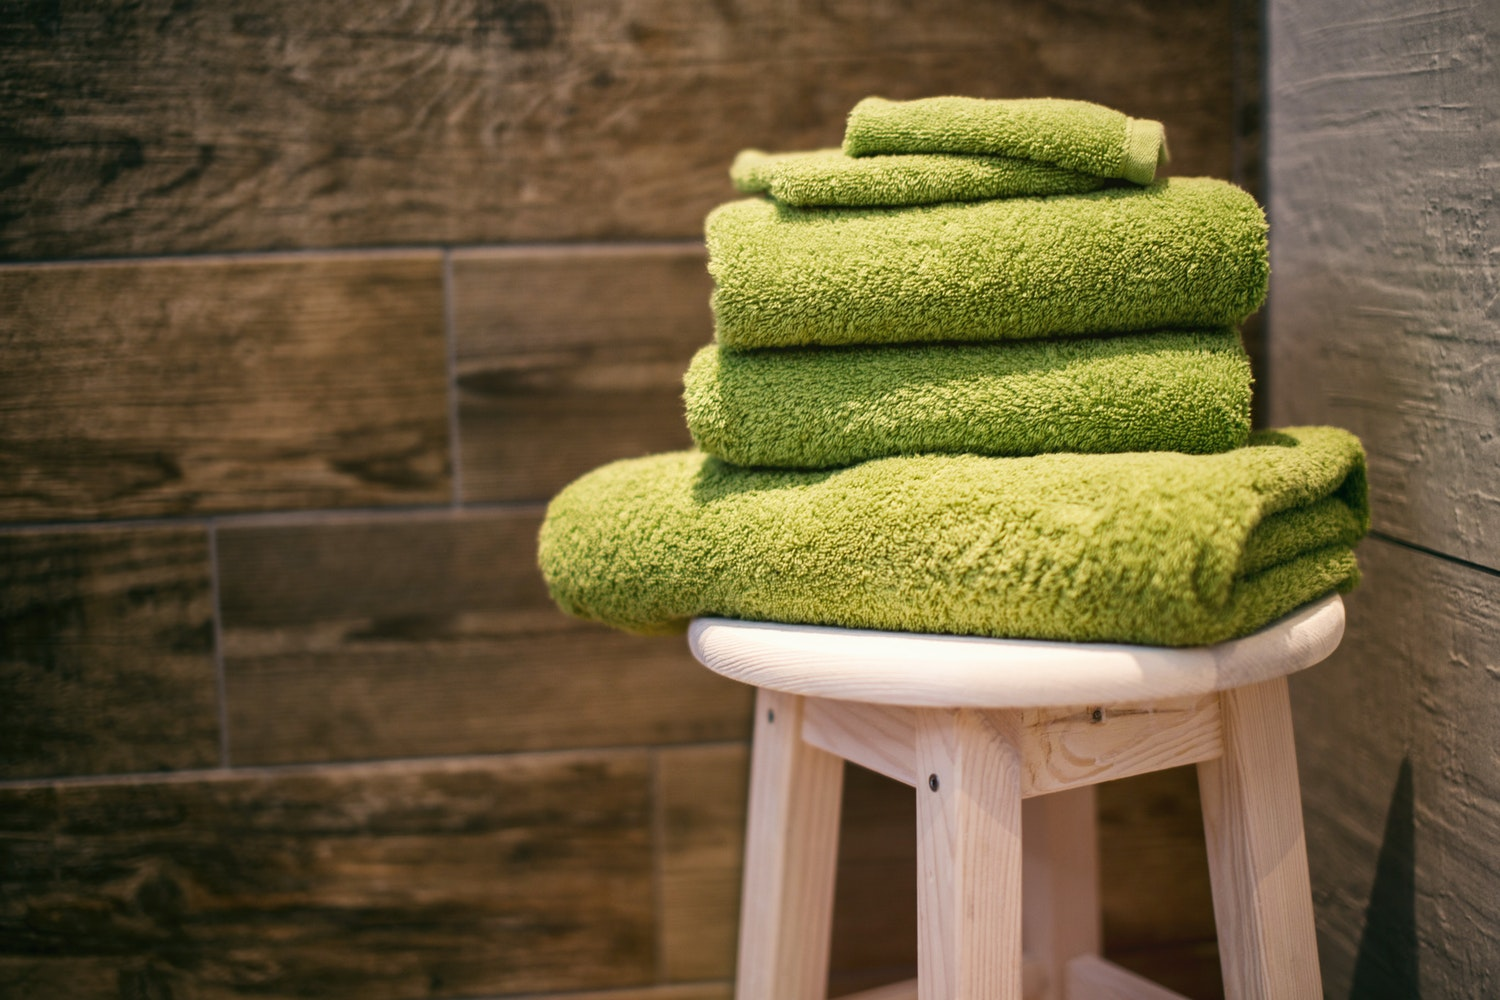 Luscious Pampering Towels and Amenities